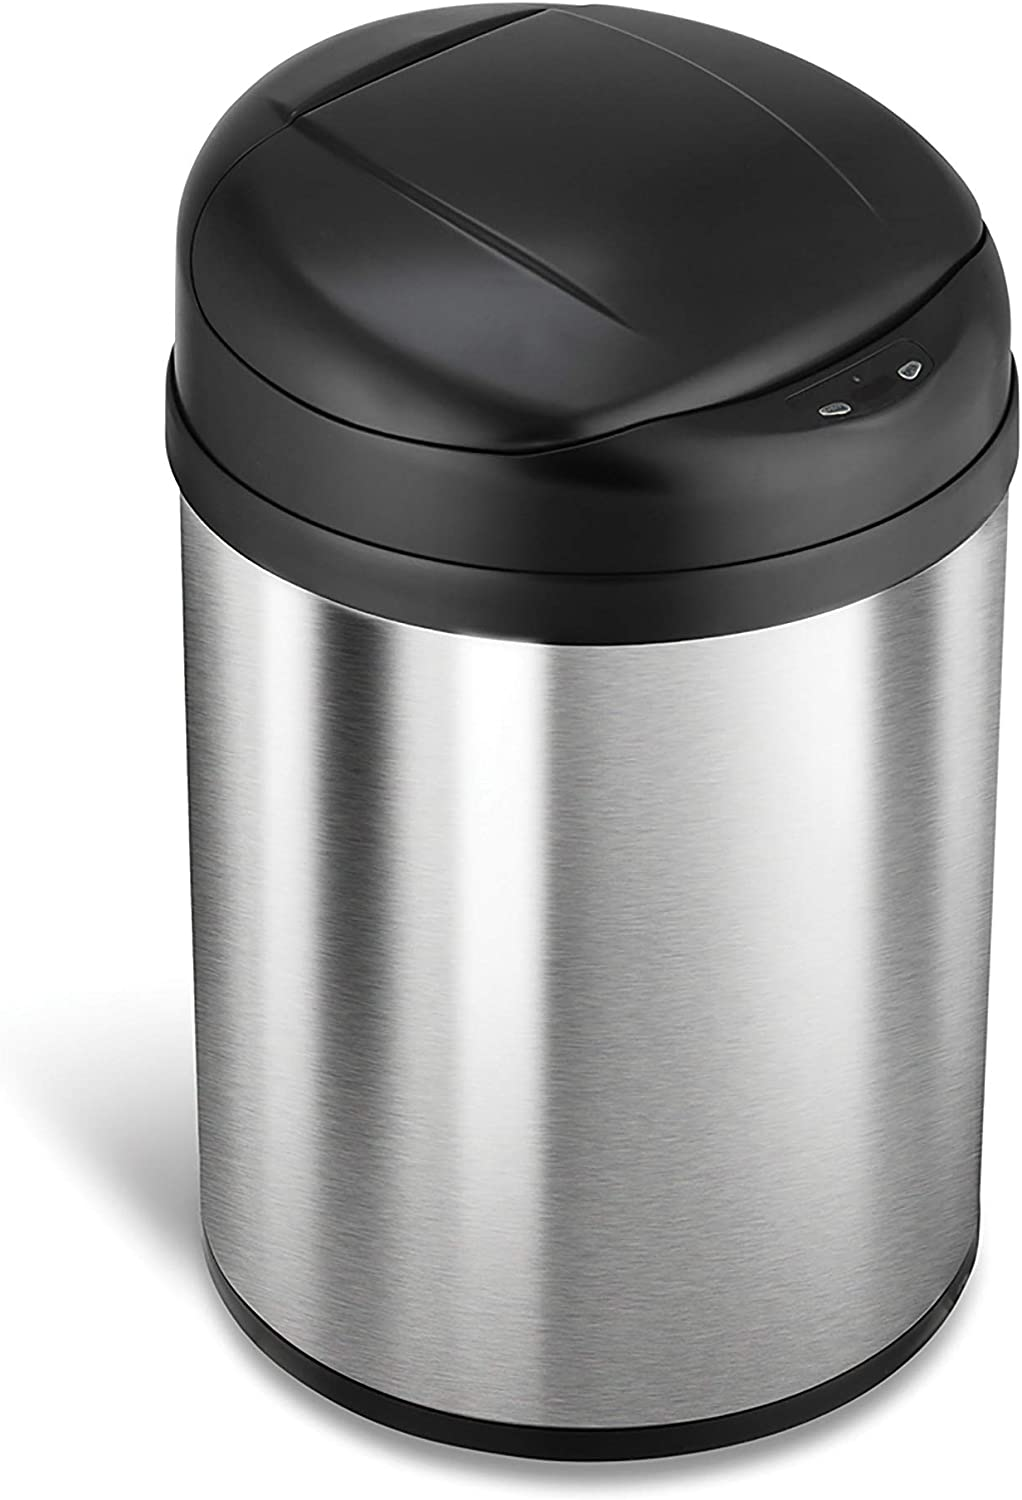 NINESTARS DZT-31-8 Automatic Touchless Infrared Motion Sensor Trash Can, 8 Gal 31L, Stainless Steel Base (Round, Black Lid)